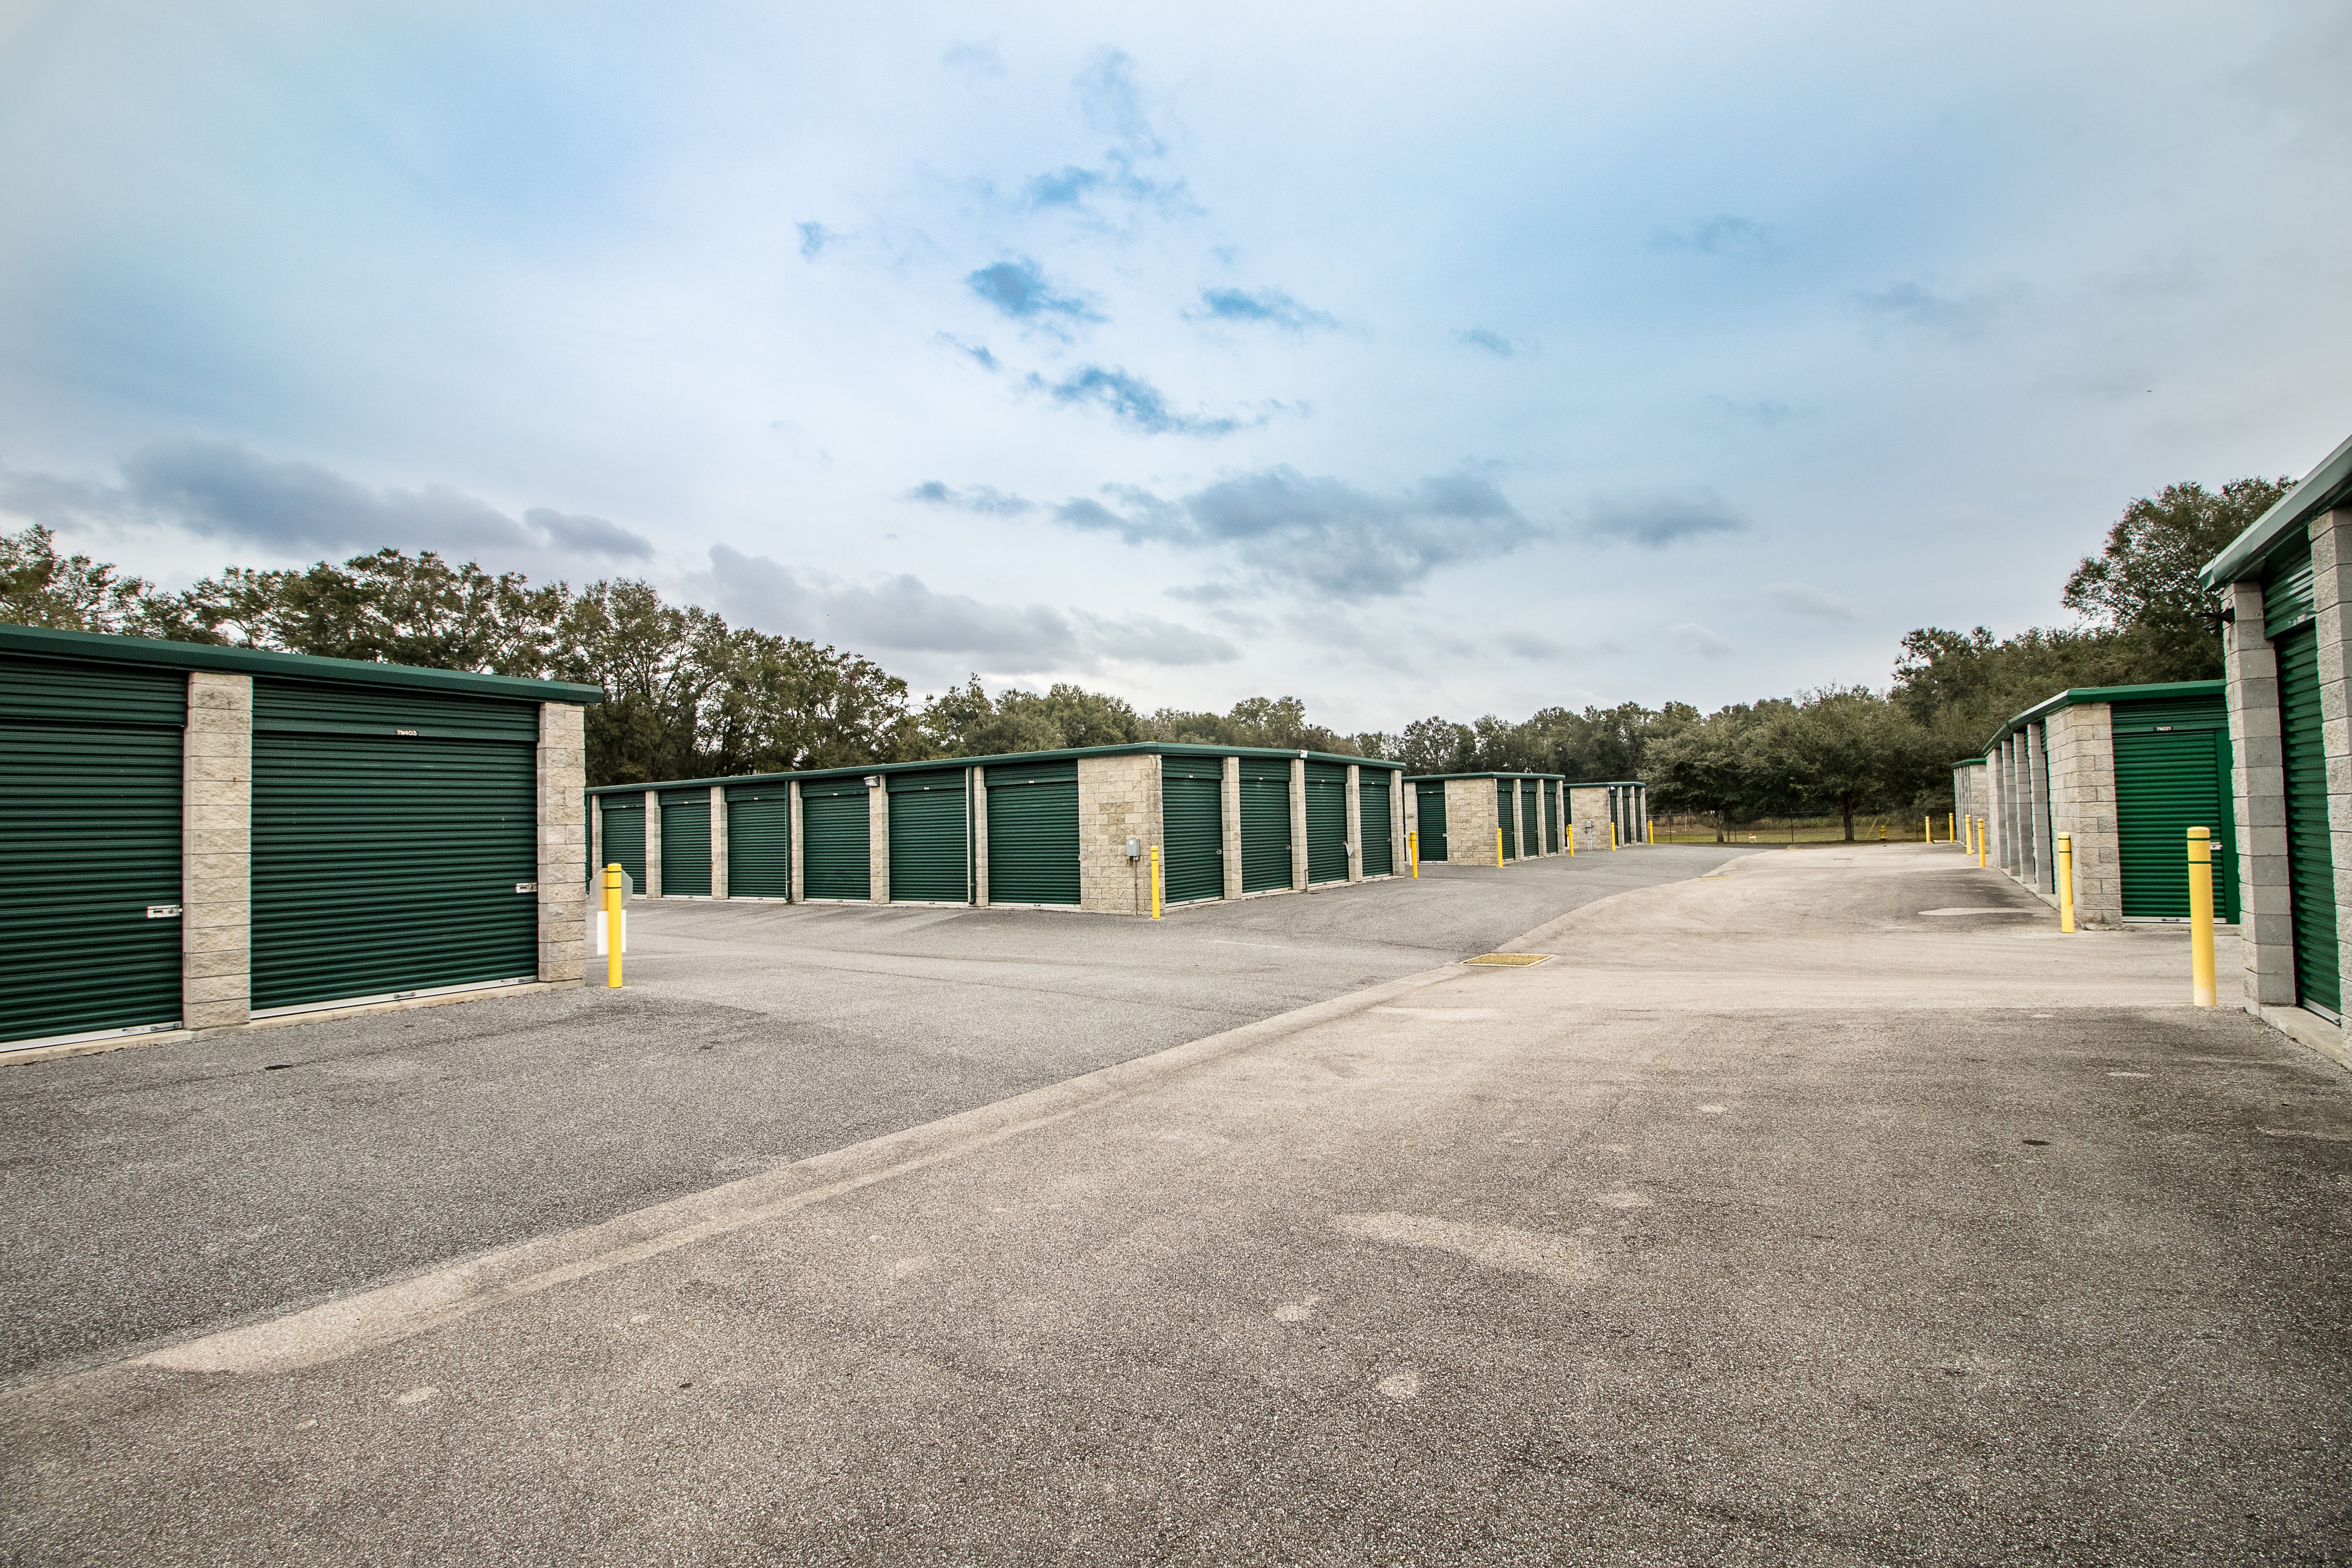 Self storage with clean exterior storage units at Neighborhood Storage